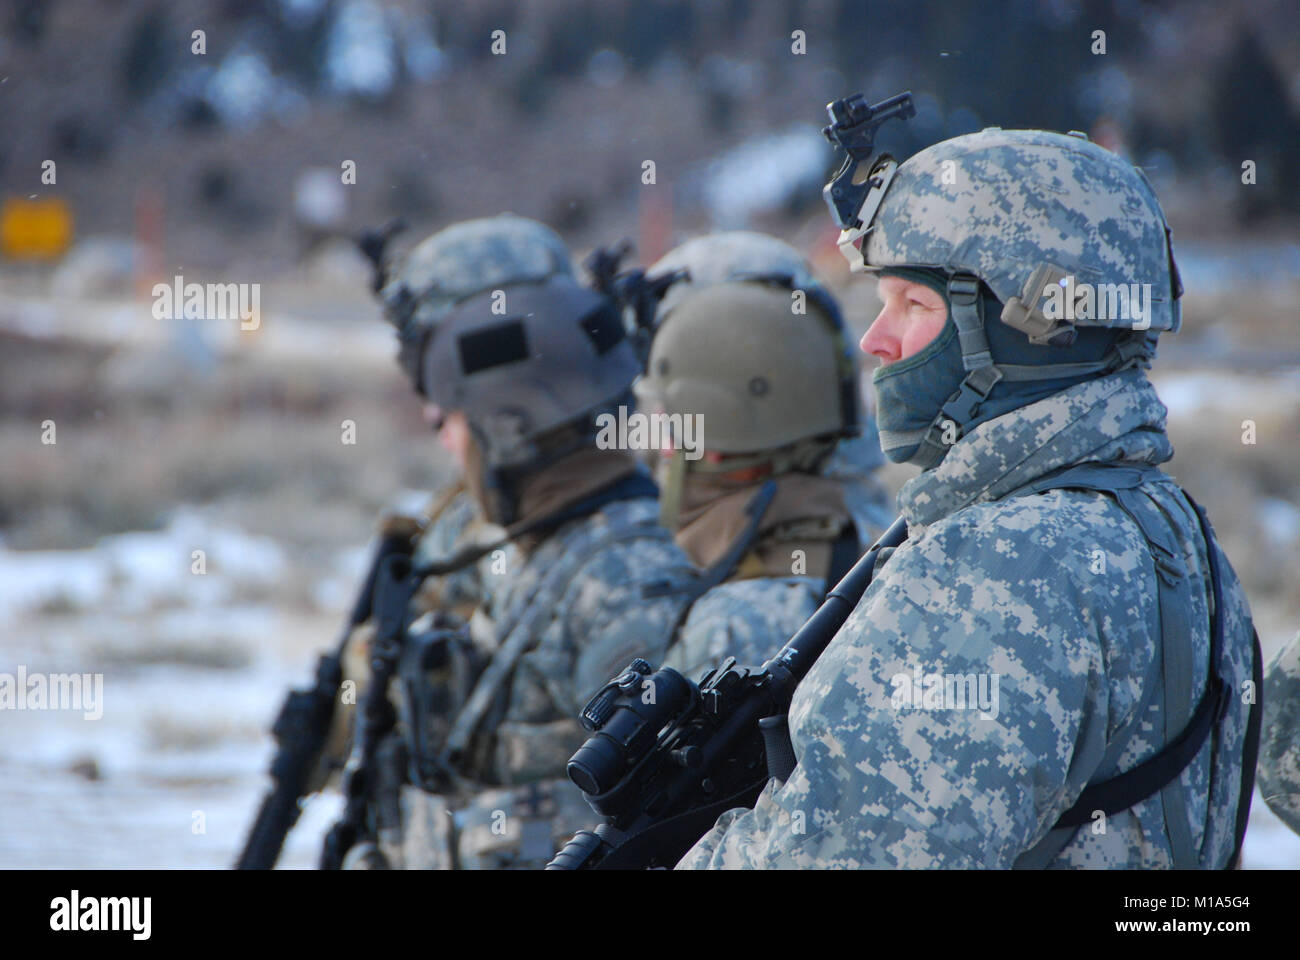 120215-Z-YY327-012 The Inglewood and Glendale based troops from the California Army National Guard's 1-160th Infantry, Stock Photo